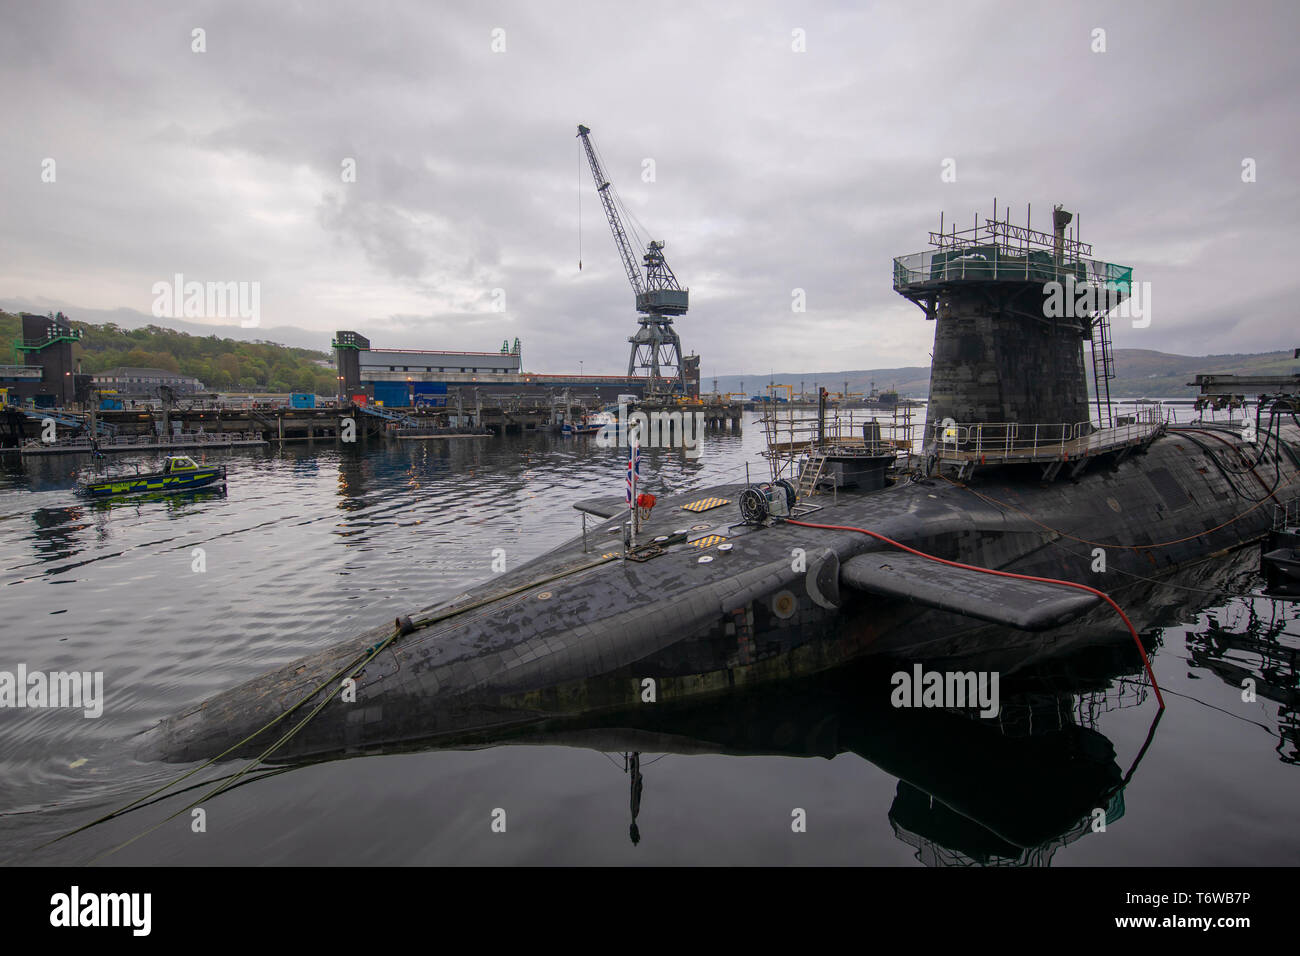 Embargoed to 0001 Friday May 3 HMS Vigilant at HM Naval Base Clyde, Faslane, the Vanguard-class submarine carries the UK's Trident nuclear deterrent. - Stock Image